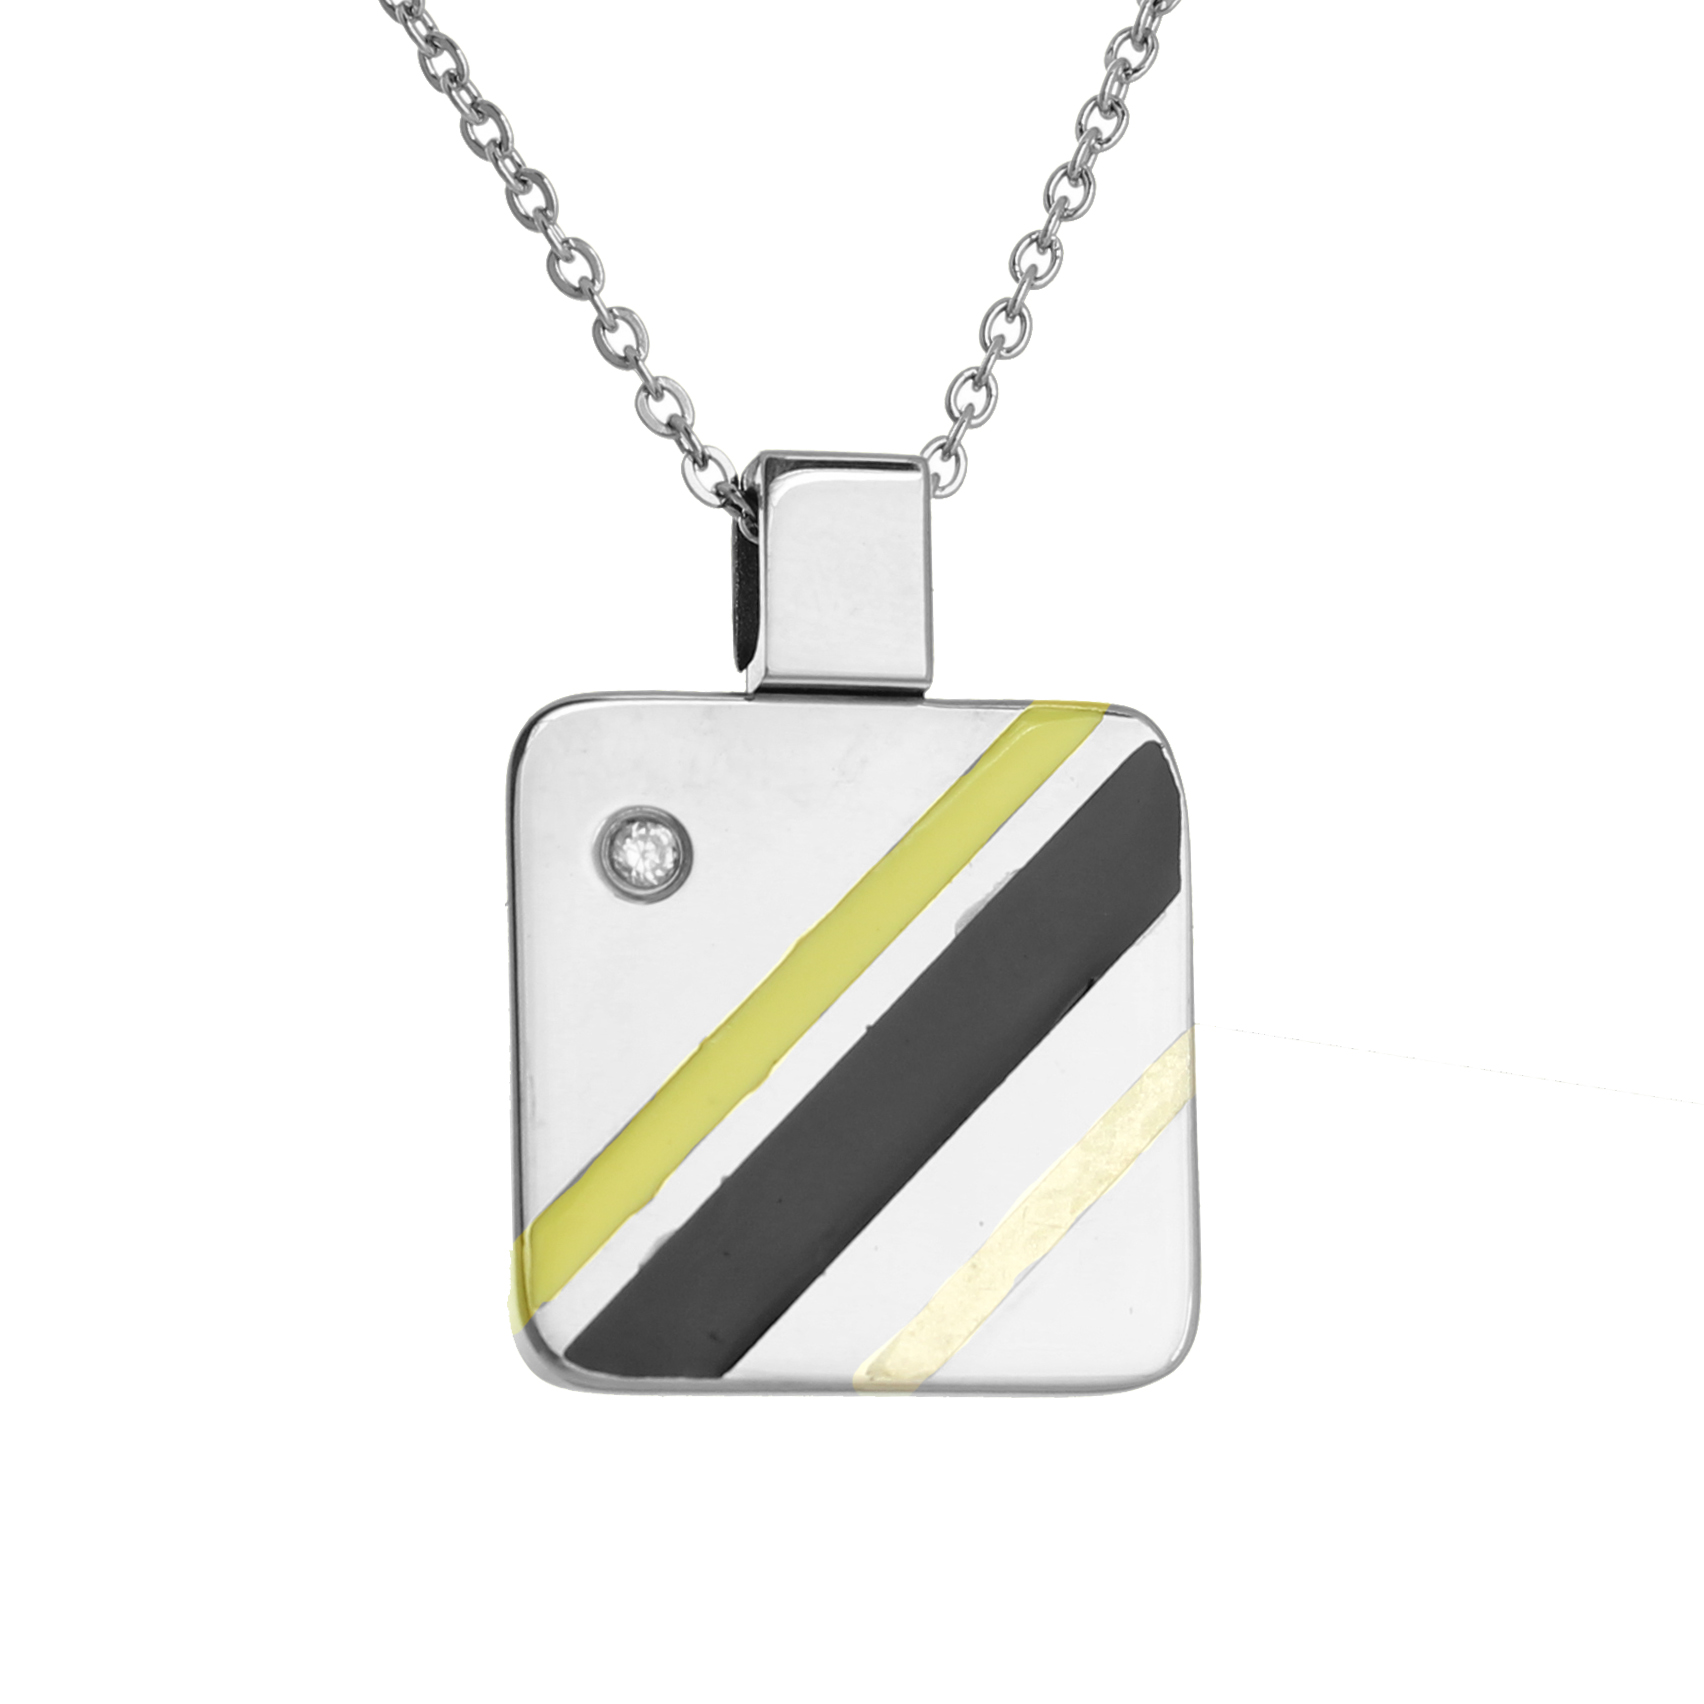 316L Stainless Steel and Black Square Striped Fashion Pendant Necklace